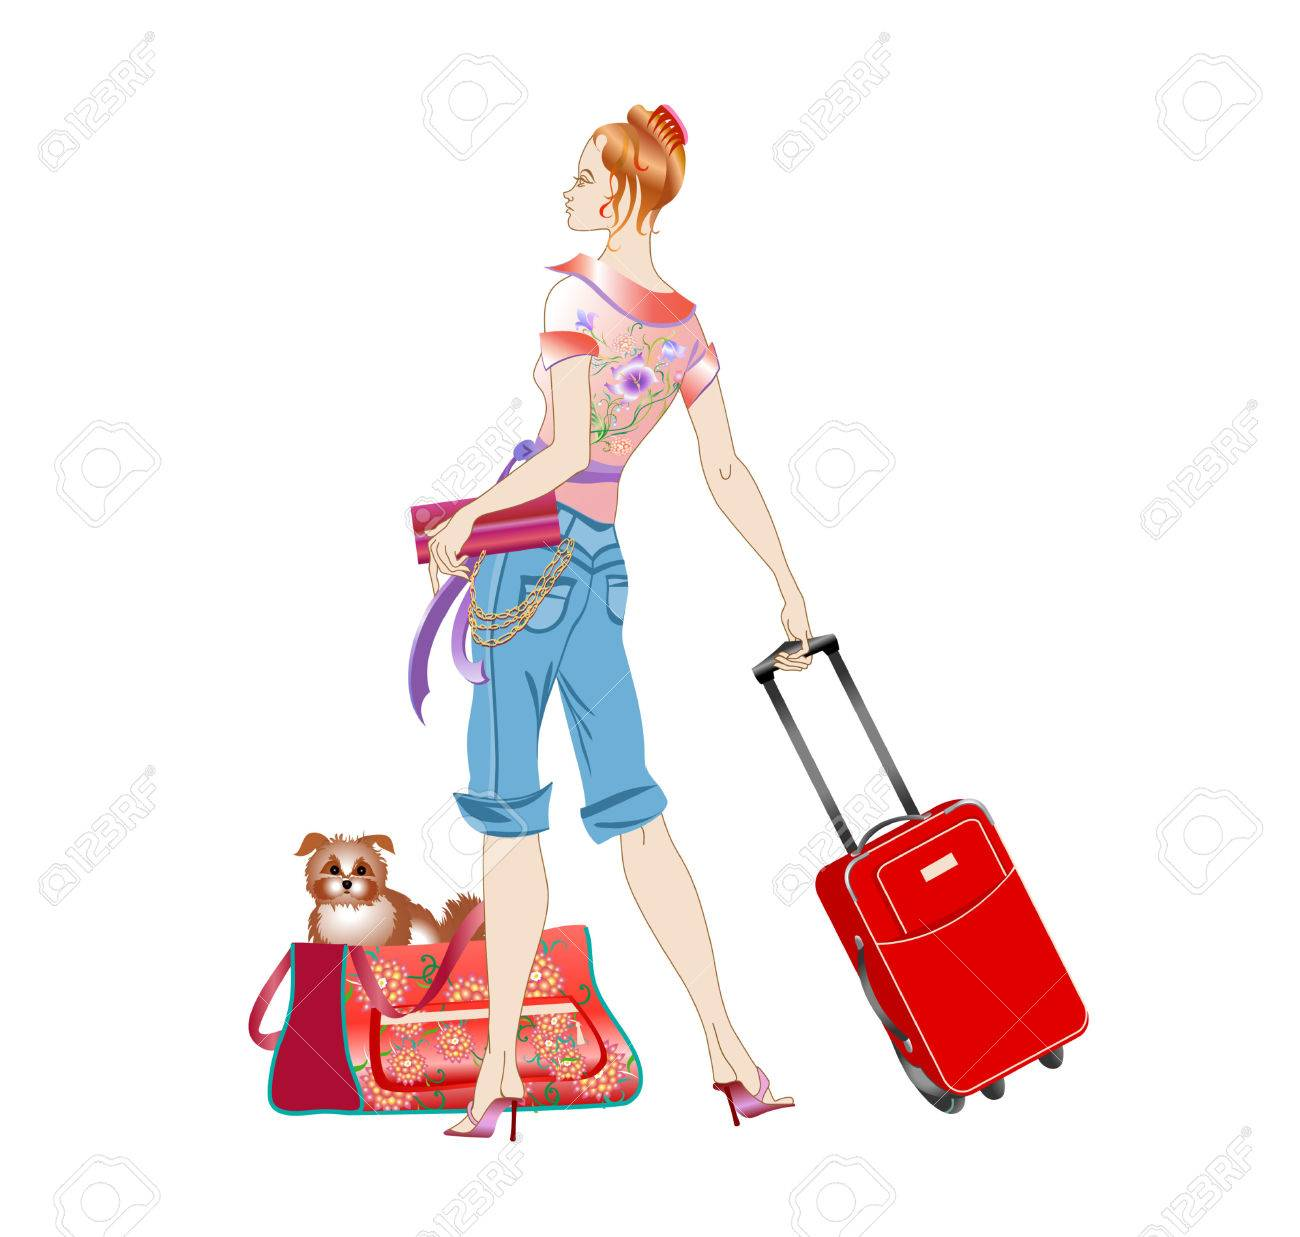 Vector illustration of young women holding the suitcase during her traveling with the dog. - 4055949